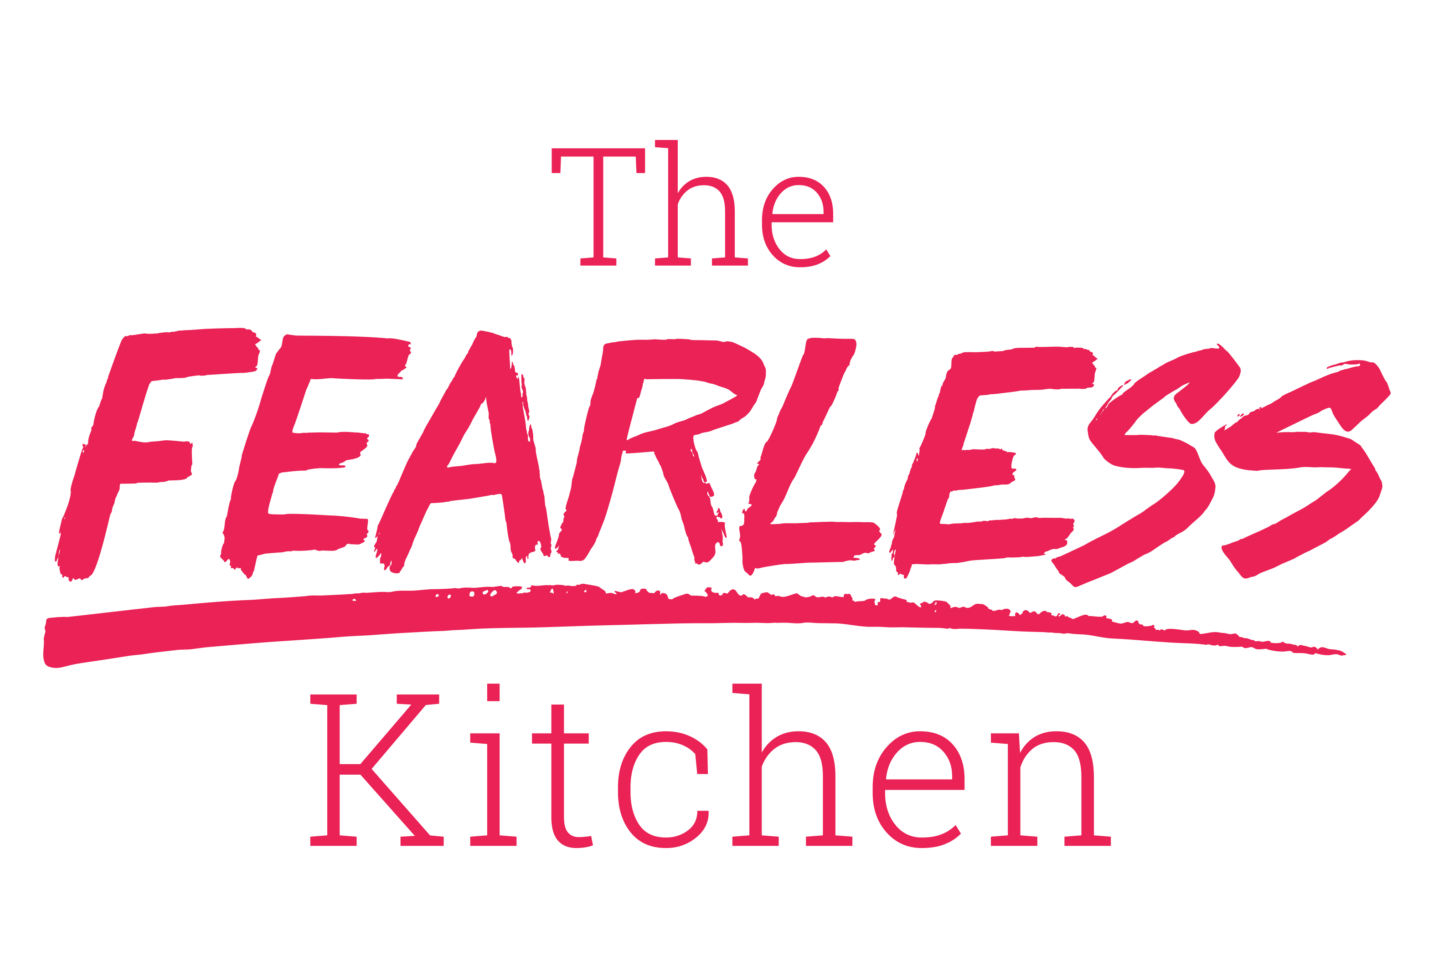 The Fearless Kitchen Pink logo